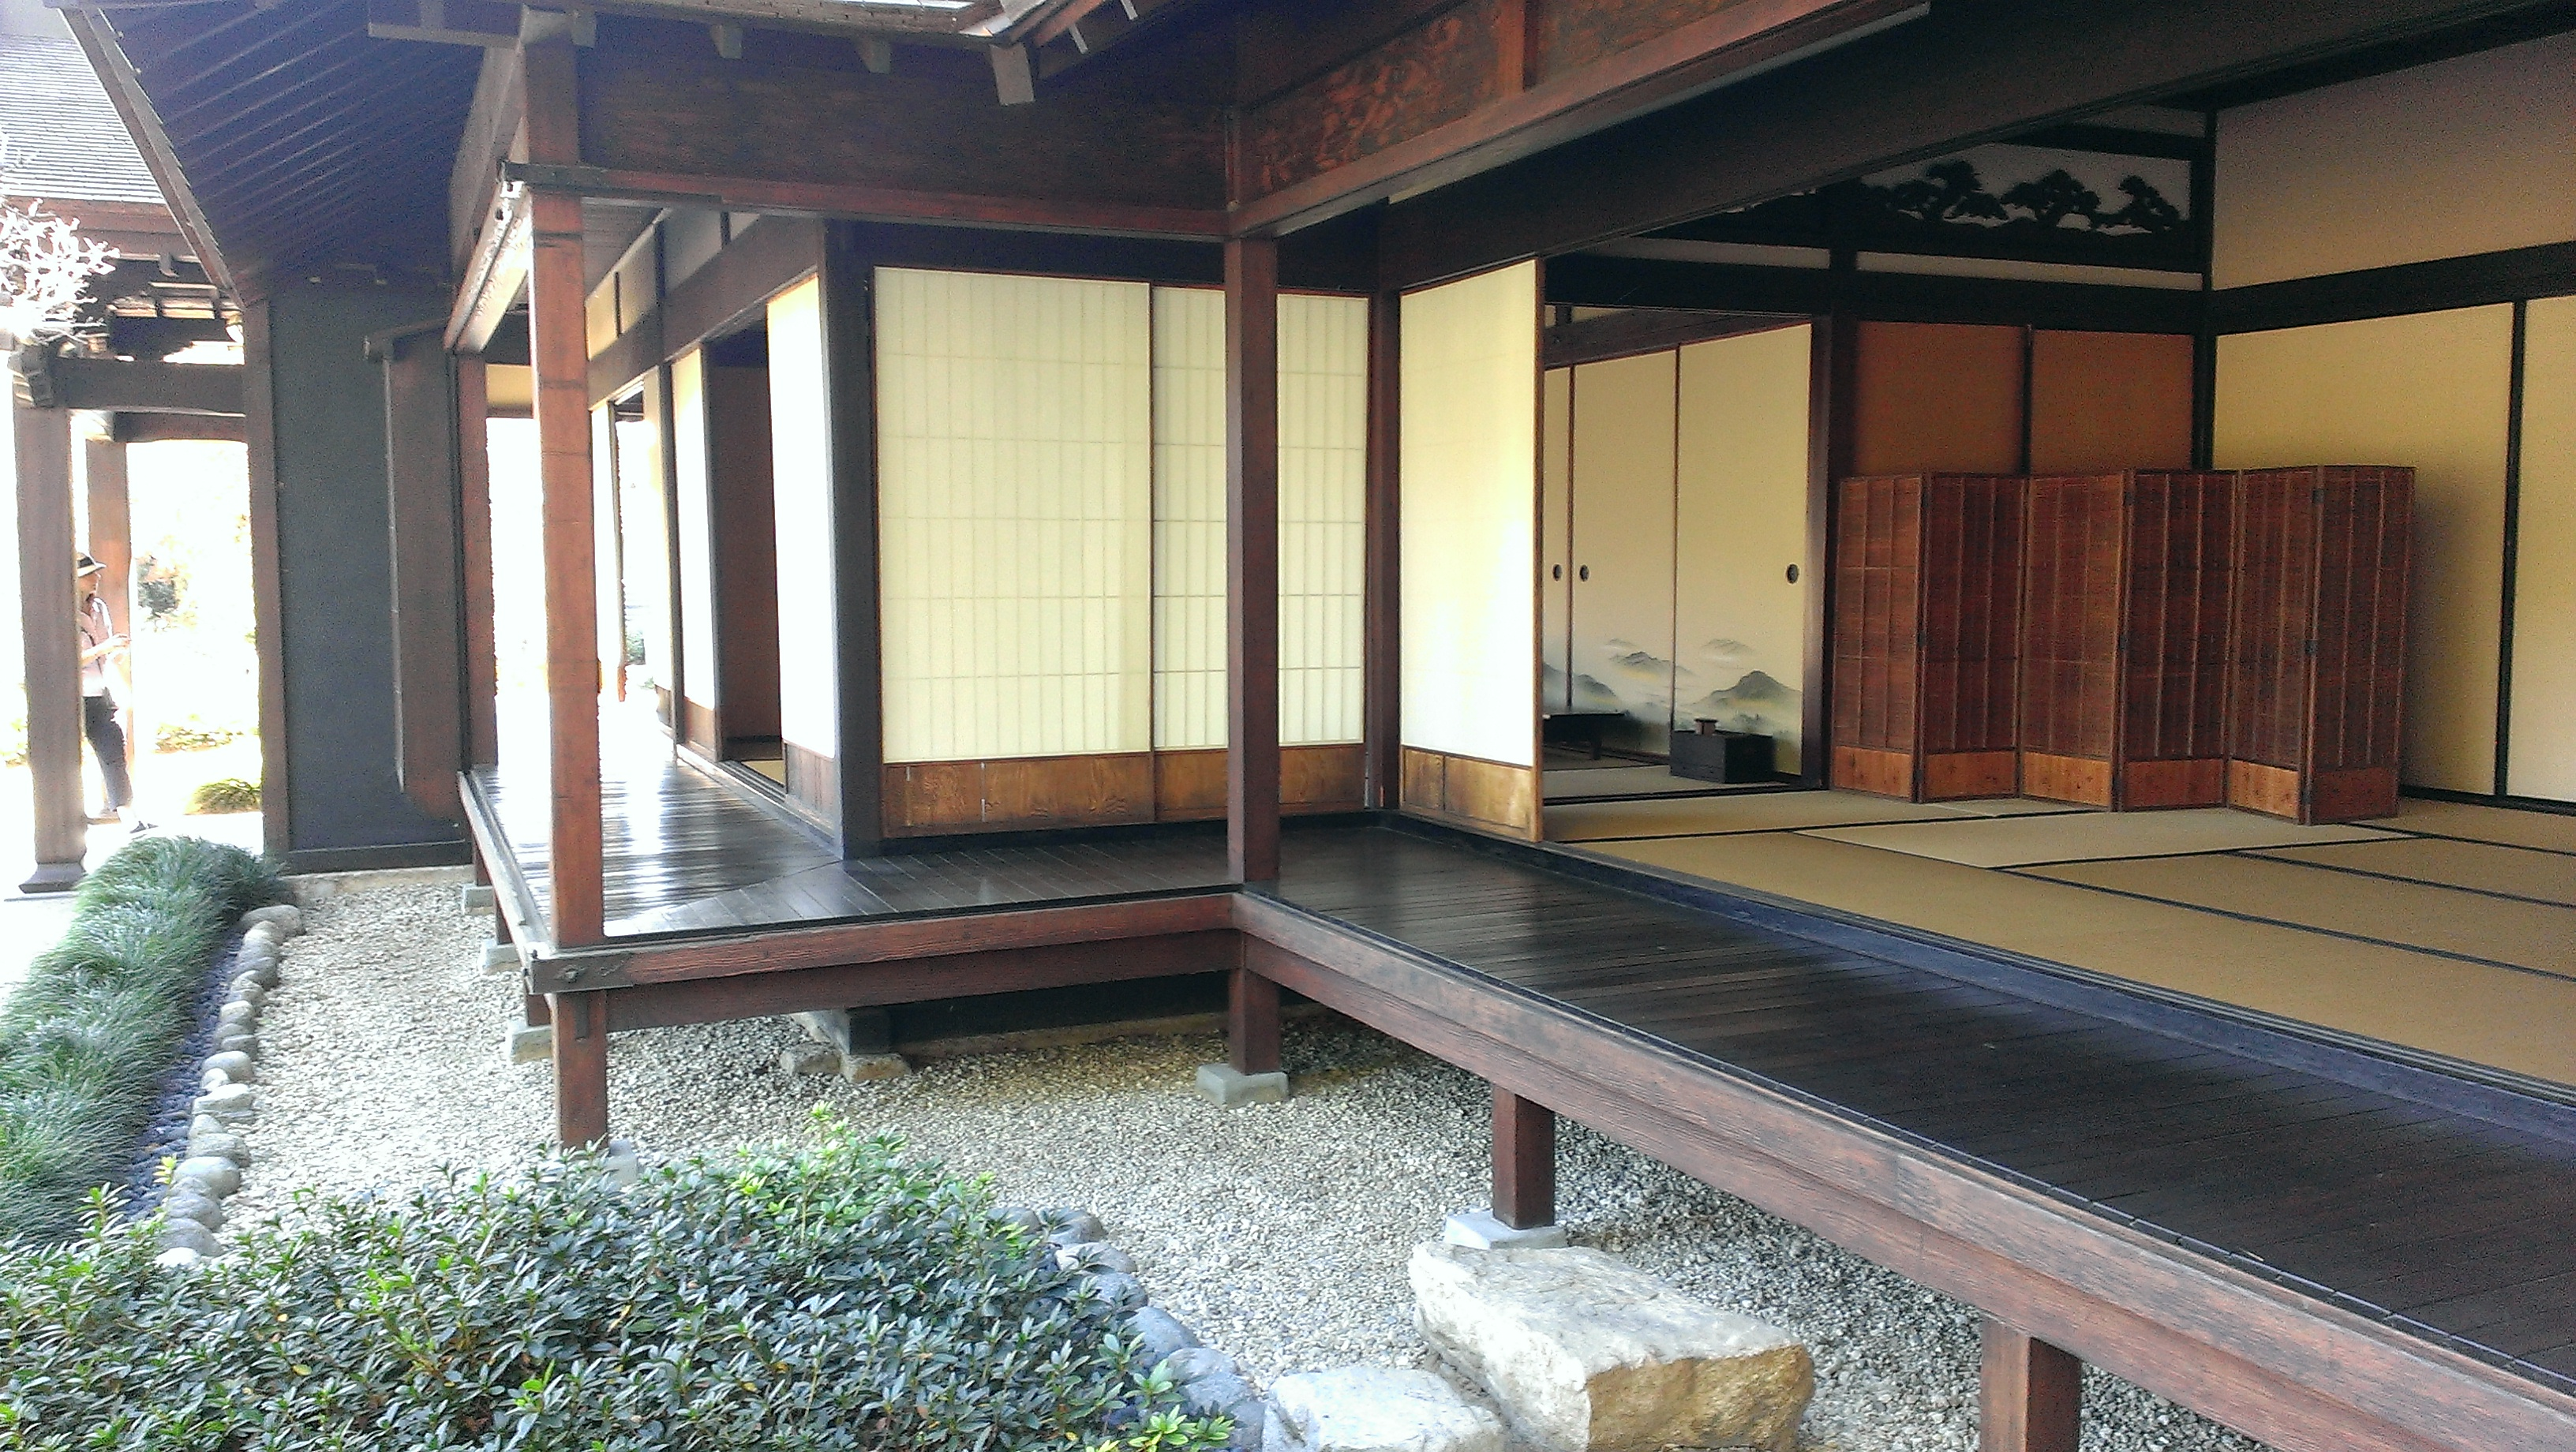 File:Alternate Detail Of Traditional Japanese Home At Japanese Garden,  Huntington Library, Art Part 91